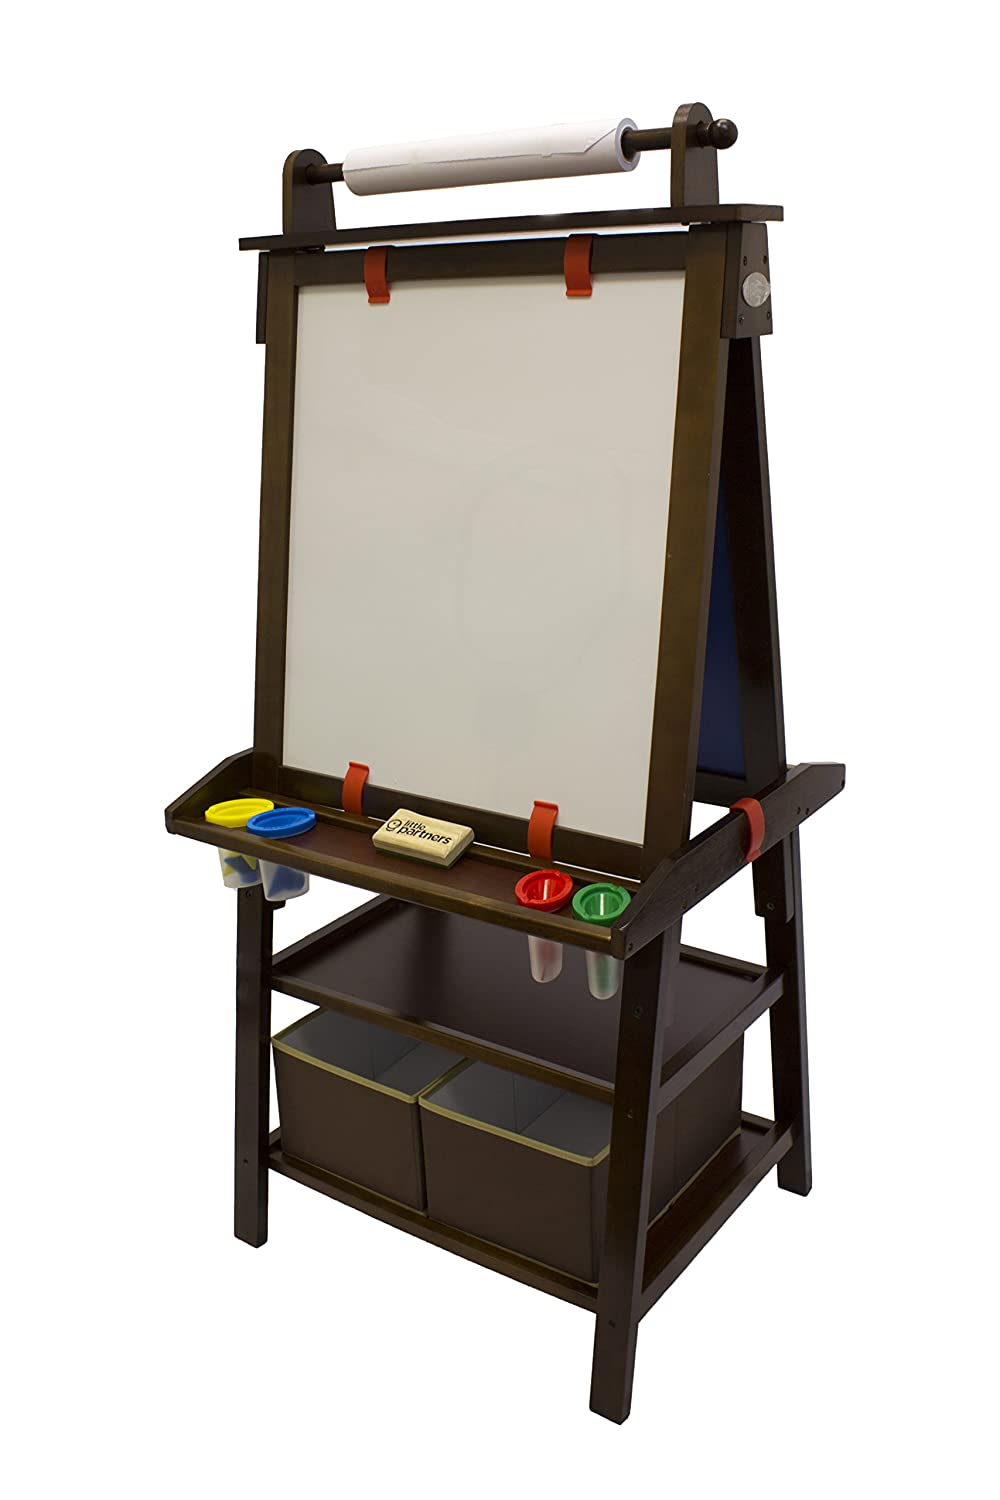 Two Sided A-Frame Paint Easel, Chalk Board & Magnetic Dry Erase - w/ Storage, Supply Holder & Paper Feed